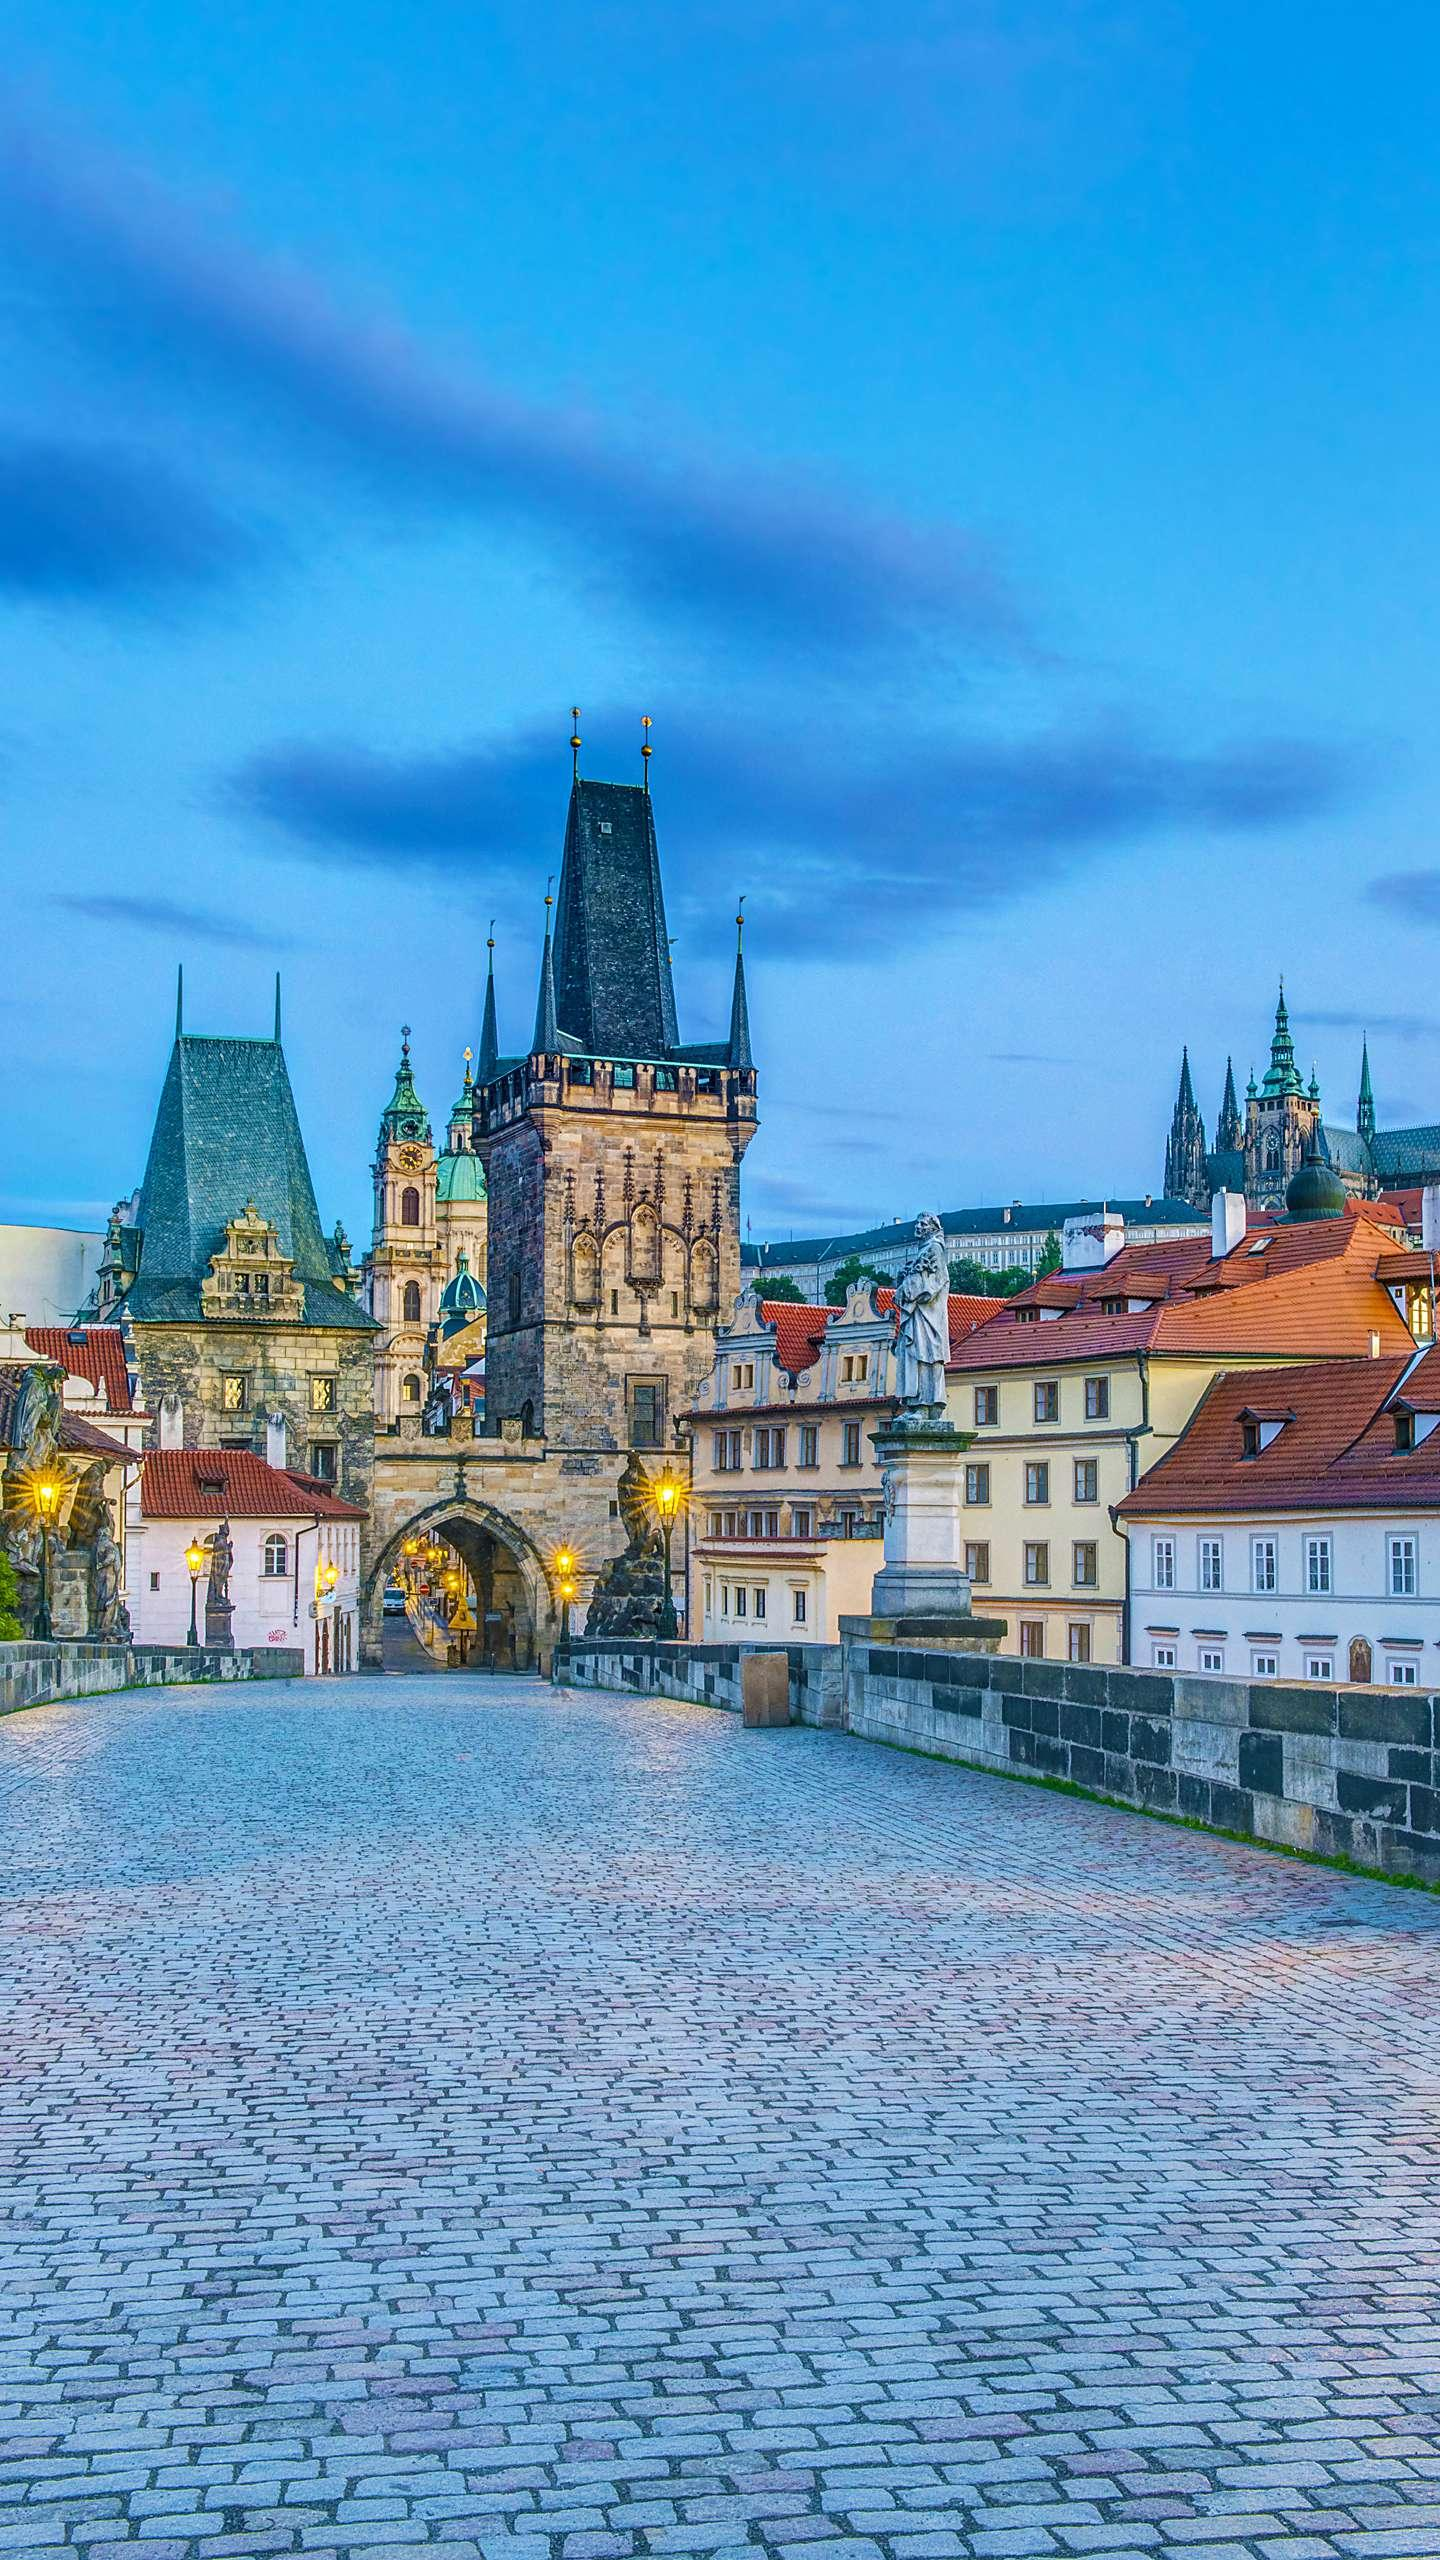 Prague - Charles Bridge. It has a history of more than 650 years and has become one of Prague's most famous monuments with its long history and architectural art.